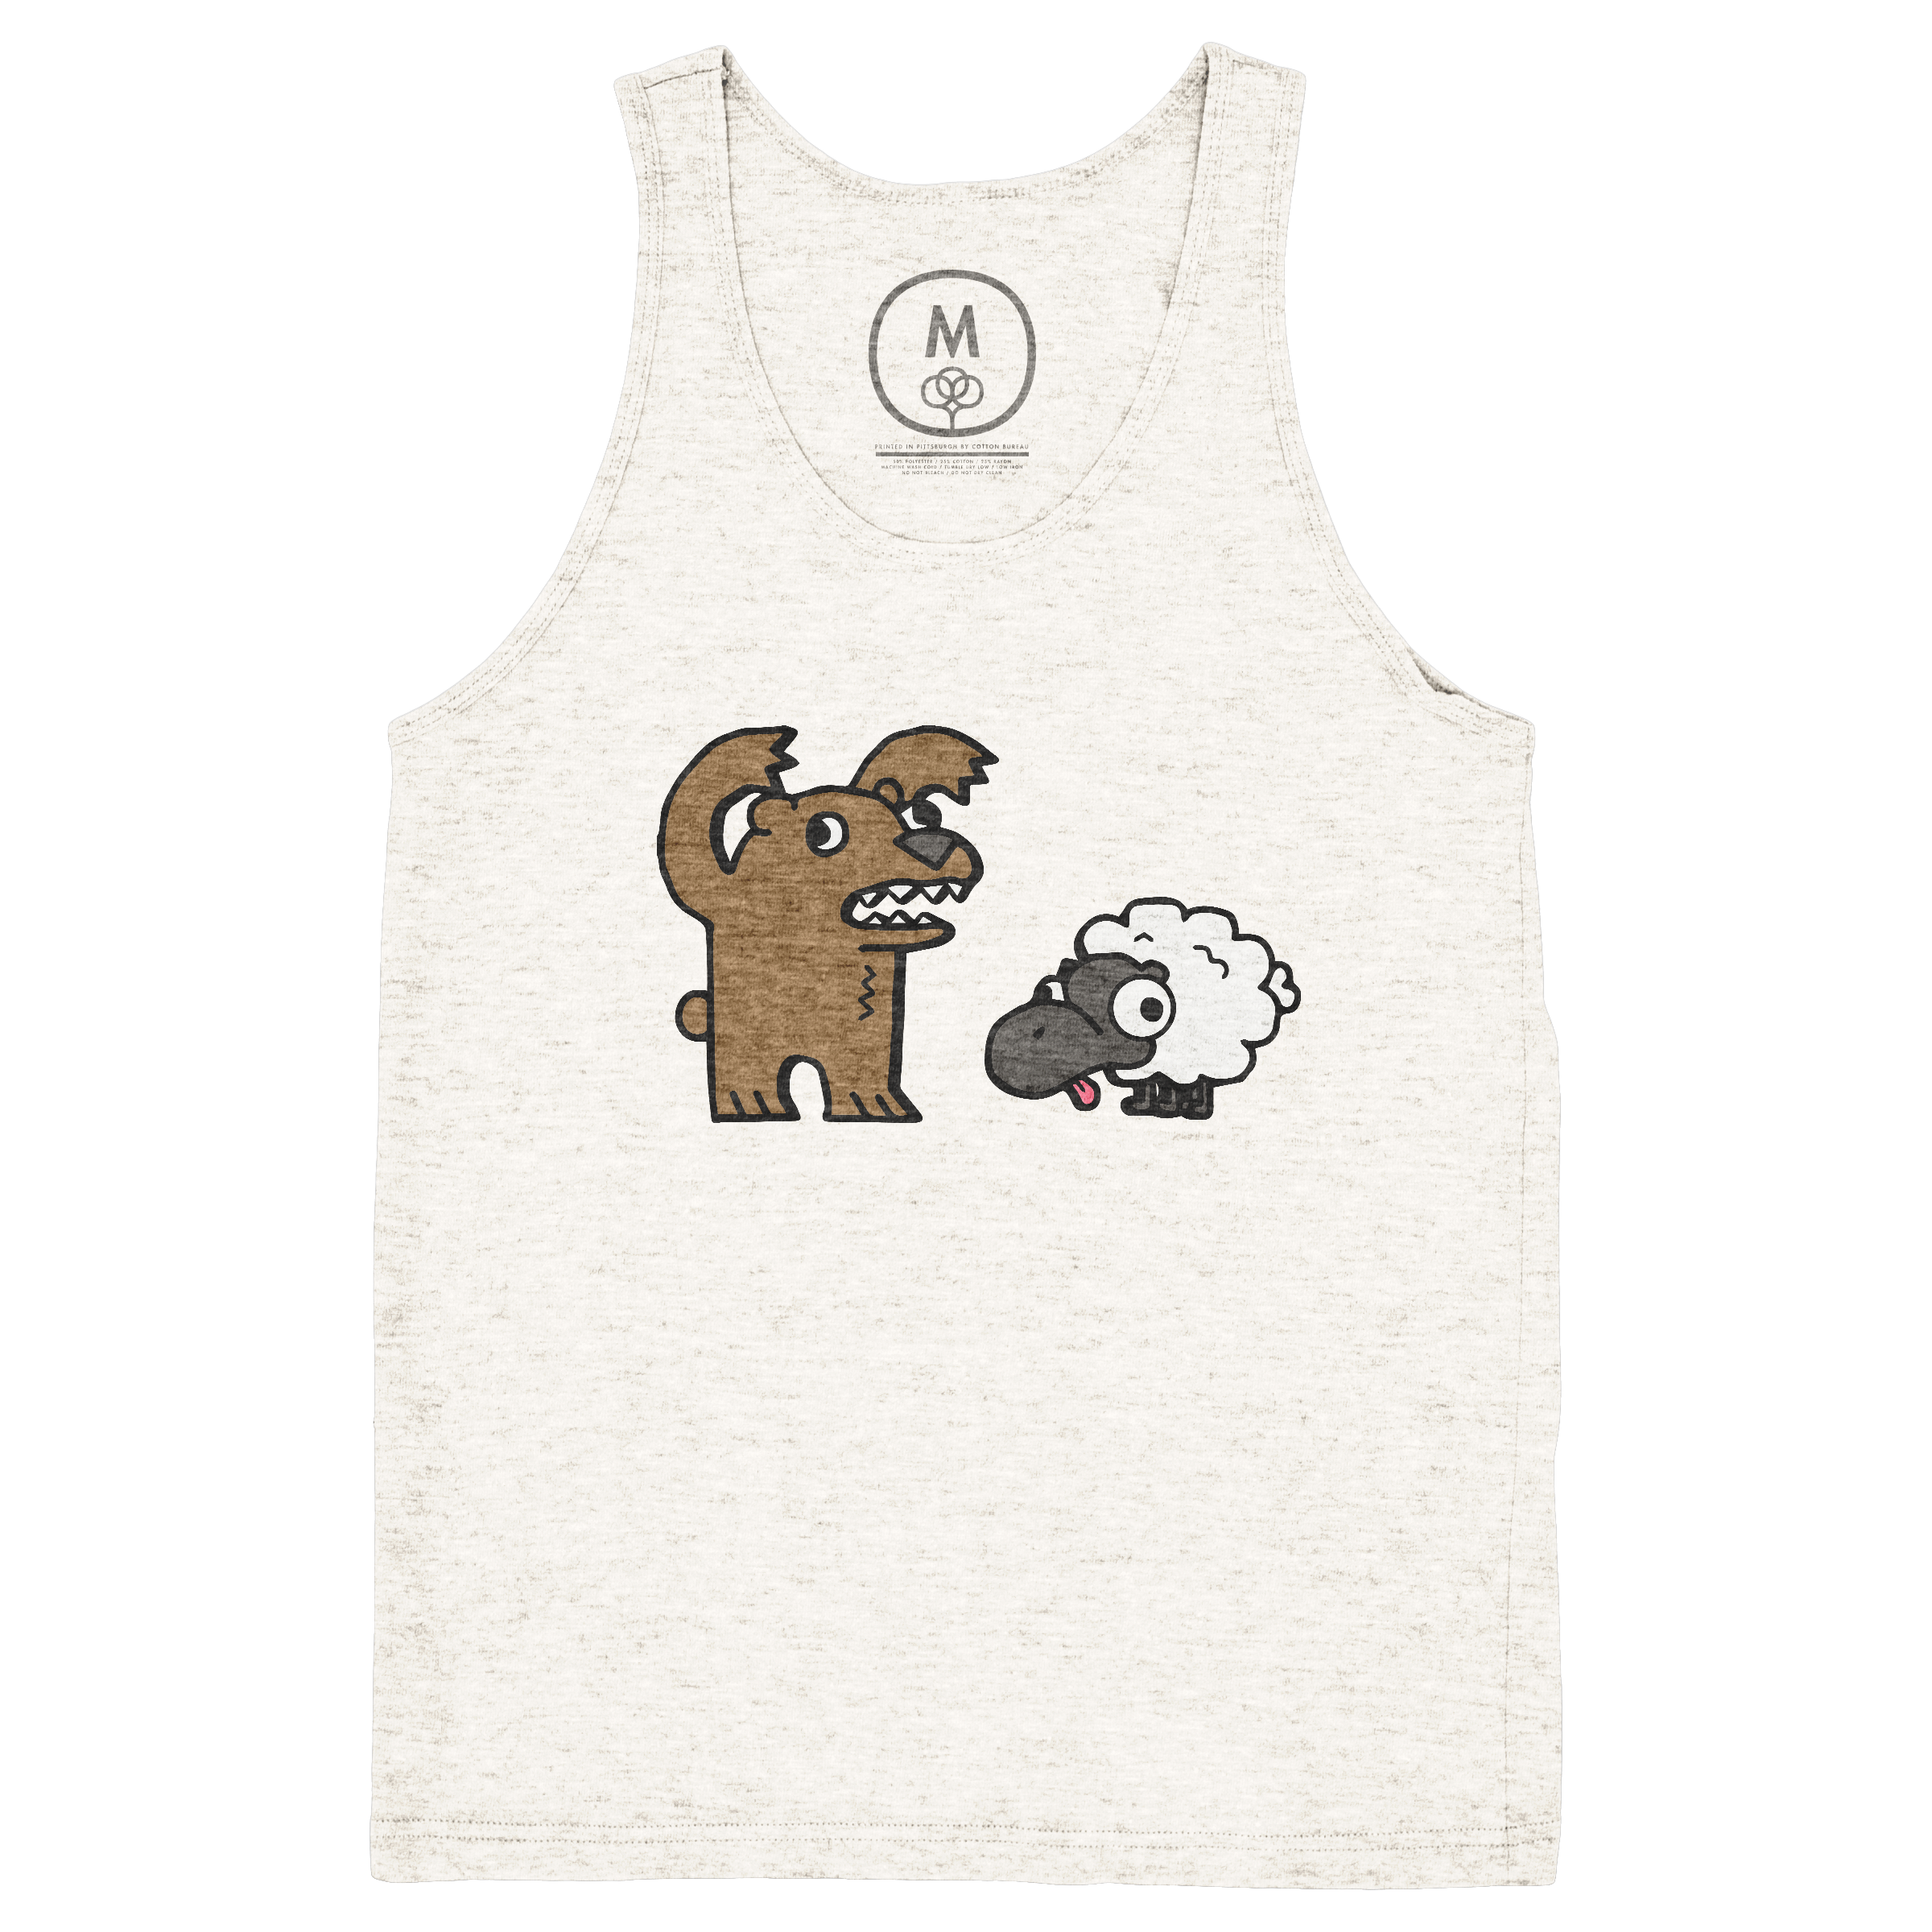 Barr and Shep Tank Top